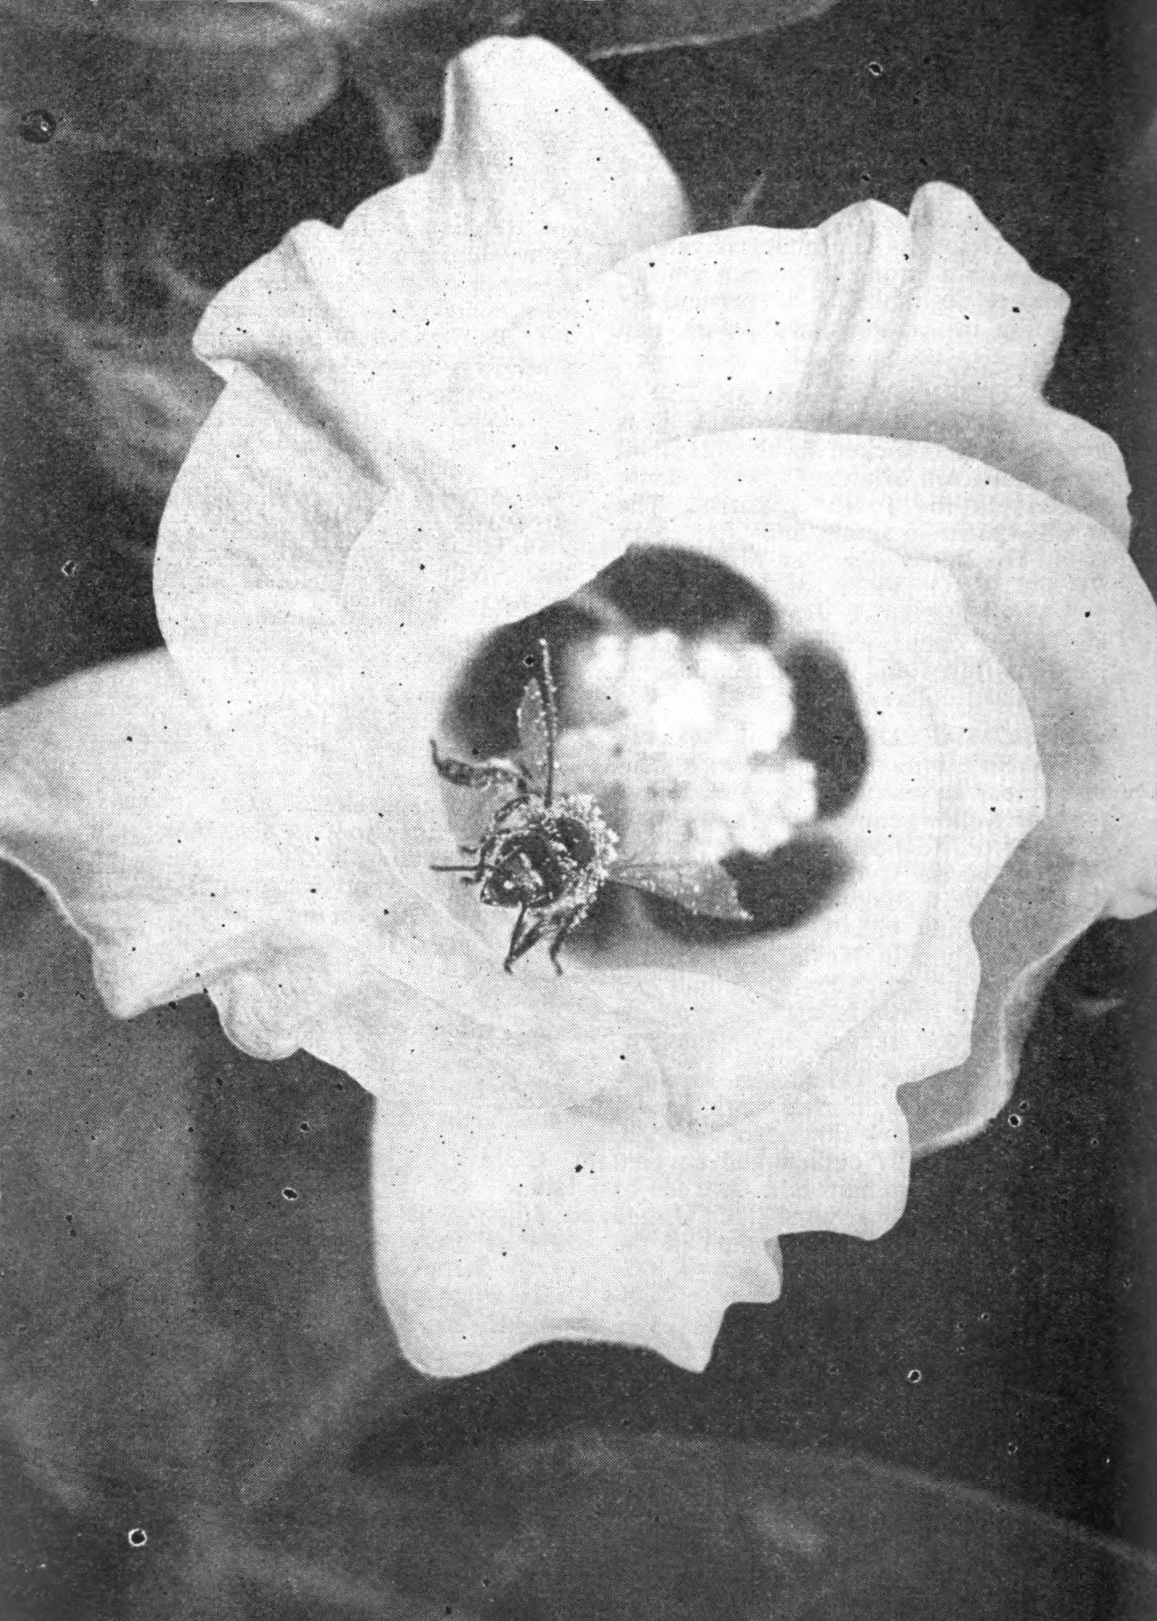 The honeybee, above, is emerging from Pima S-1 cotton flower. As it dips into the flowers of other cotton plants in search of nectar it will cross-pollinate those plants. Although cotton is a self-pollinating plant, bee culture scientists of the U. S. Agricultural Research Service are finding in tests at Tucson, Arizona, that cross-pollination with bees increases cotton yields.—U.S.D.A. photo by Forsythe.